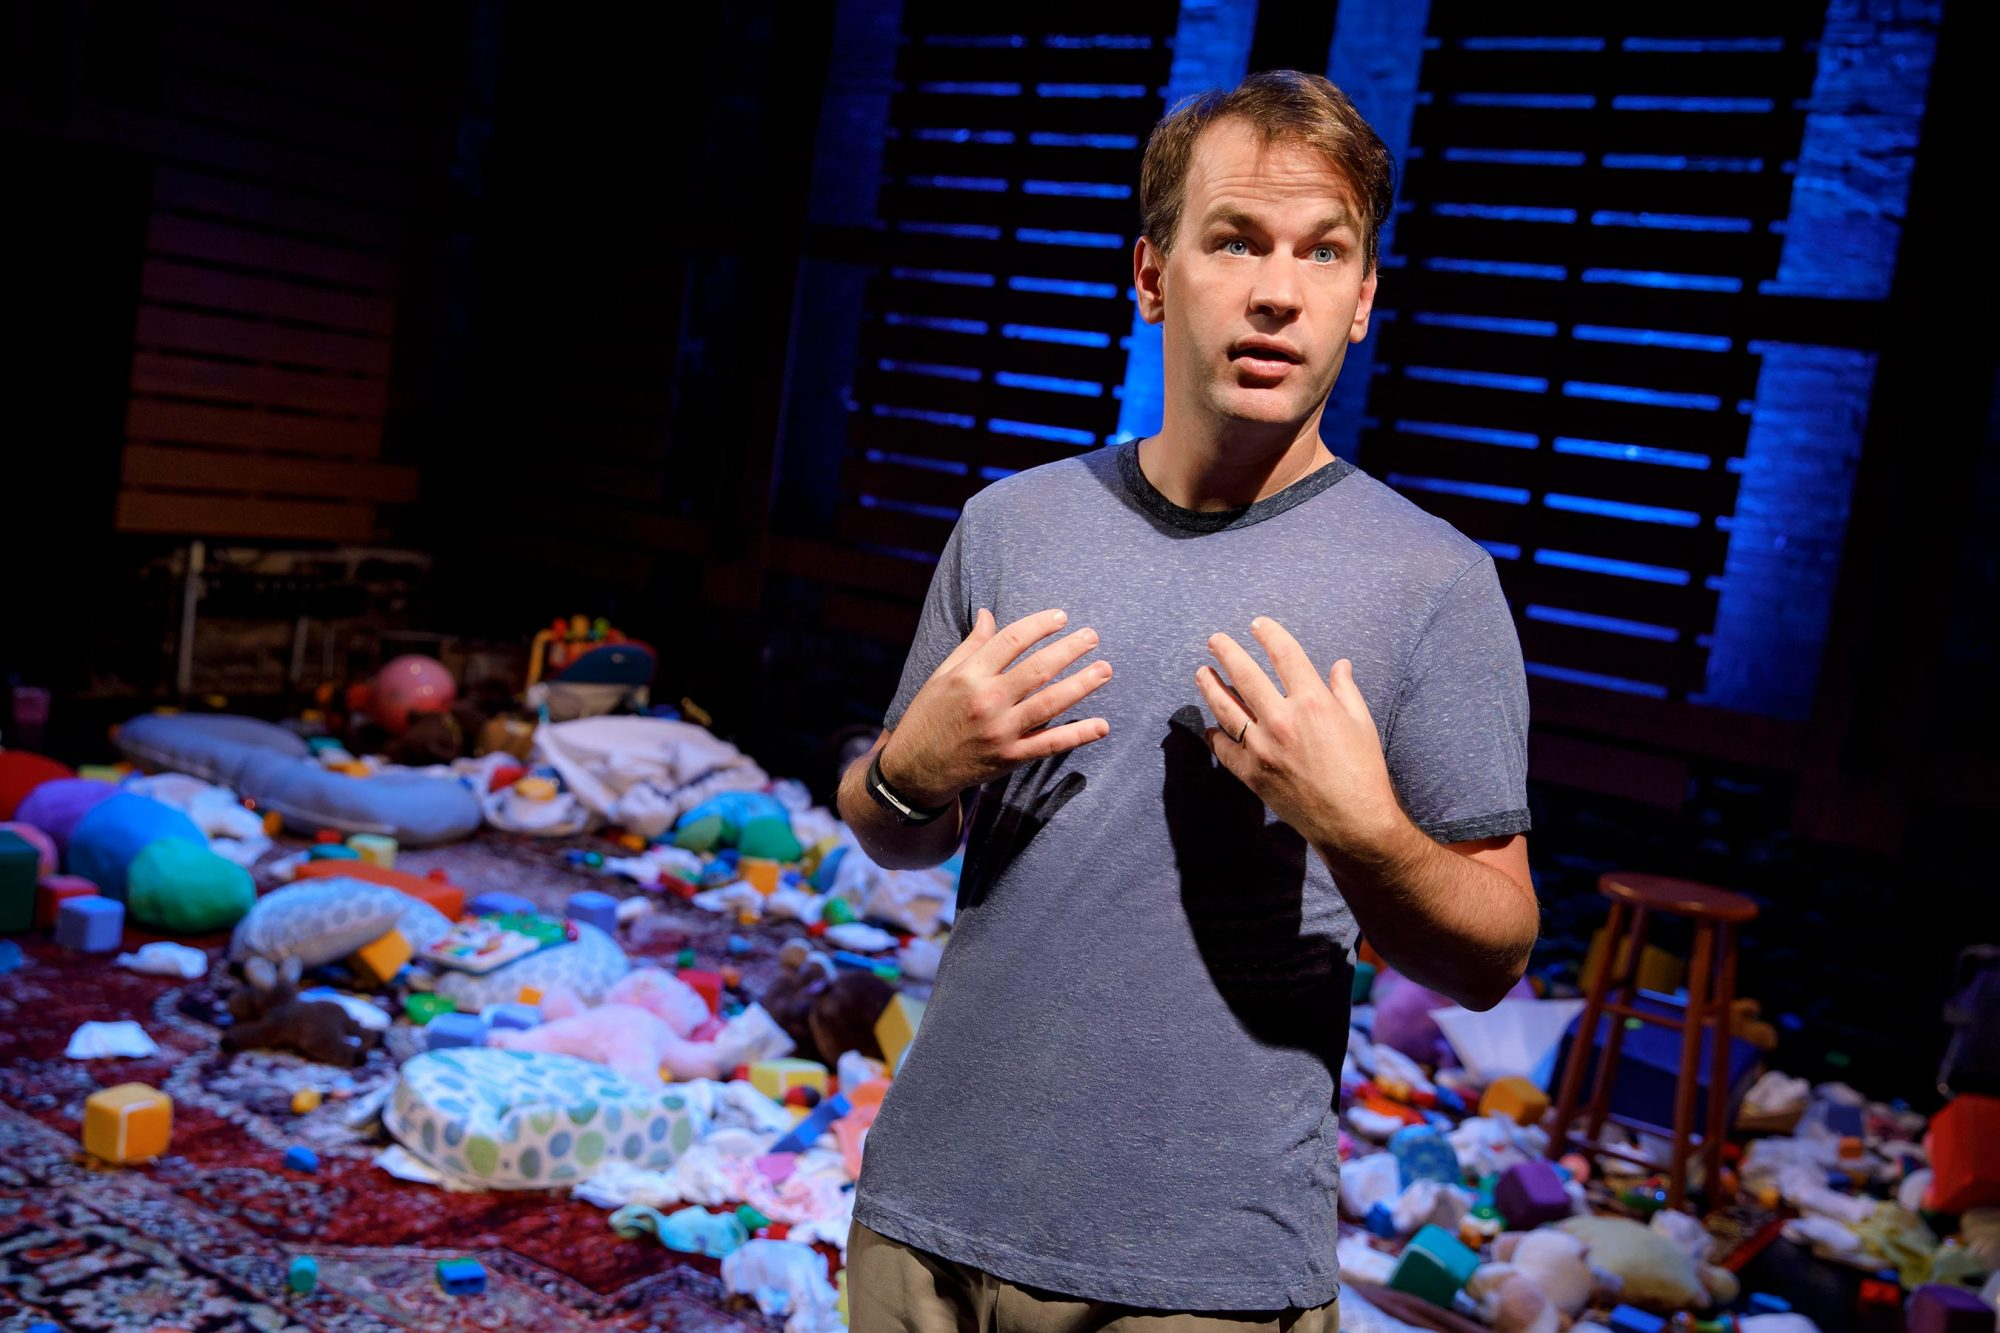 6. Mike Birbiglia's The New One